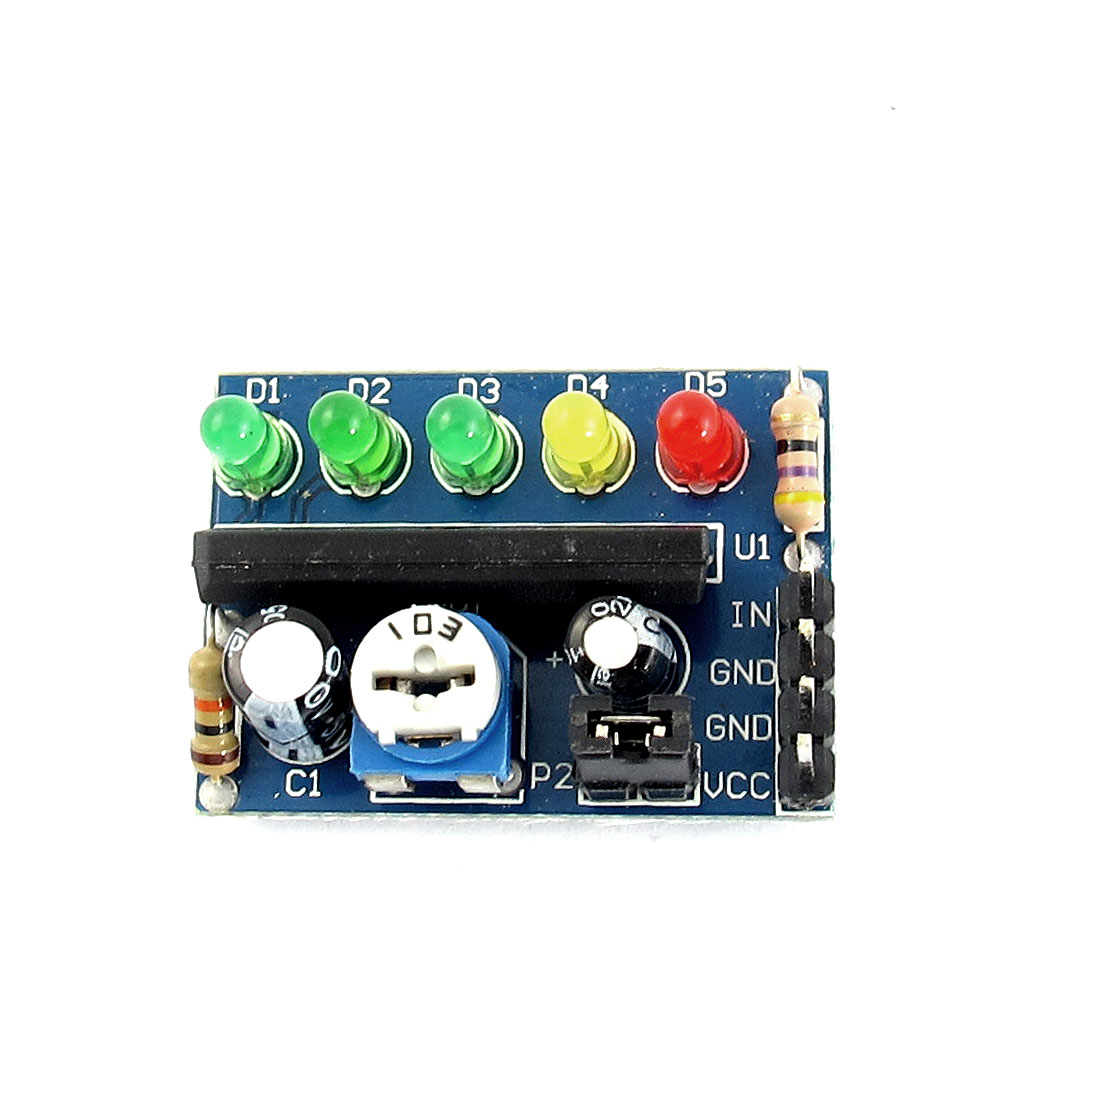 KA2284 5 Diodes Electricity Audio Level Indicator Power Power Module PCB Board DC3.5V-12V